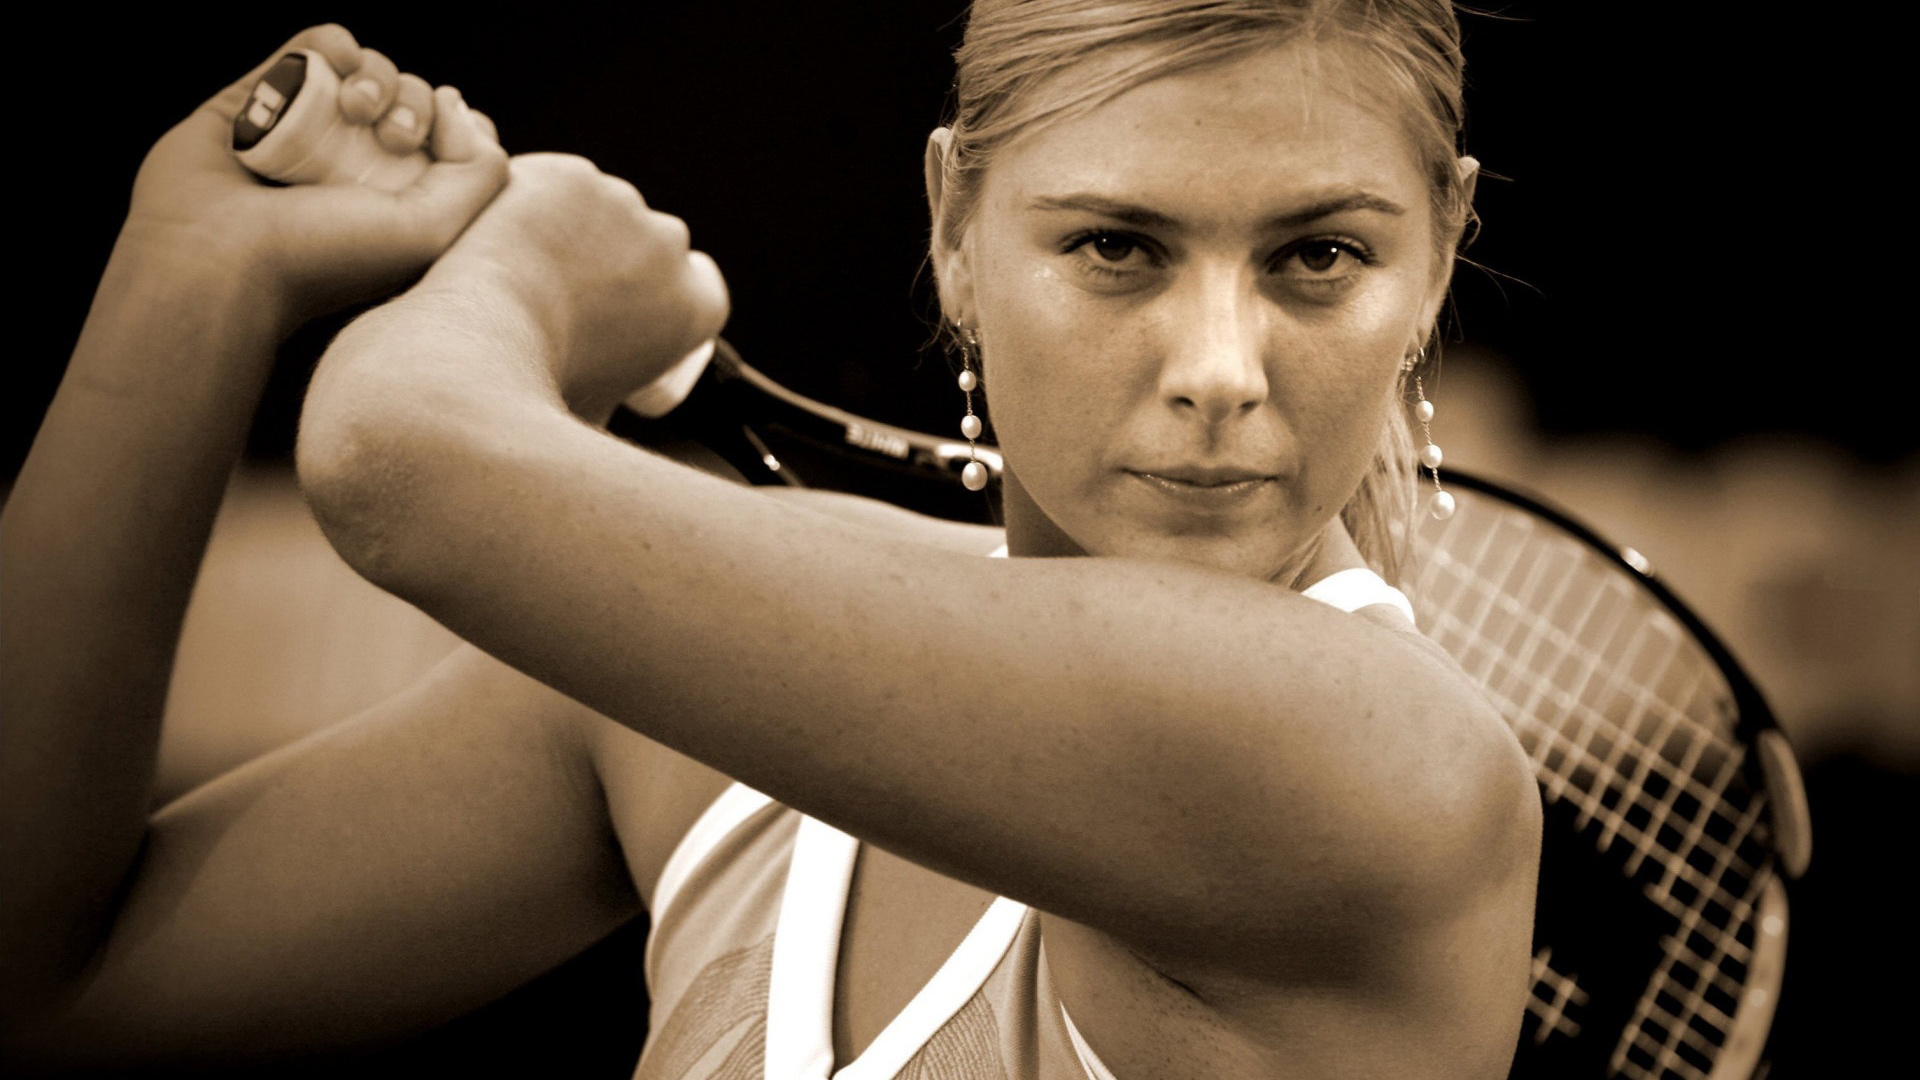 Maria Sharapova - This Girl Can Play Wallpapers